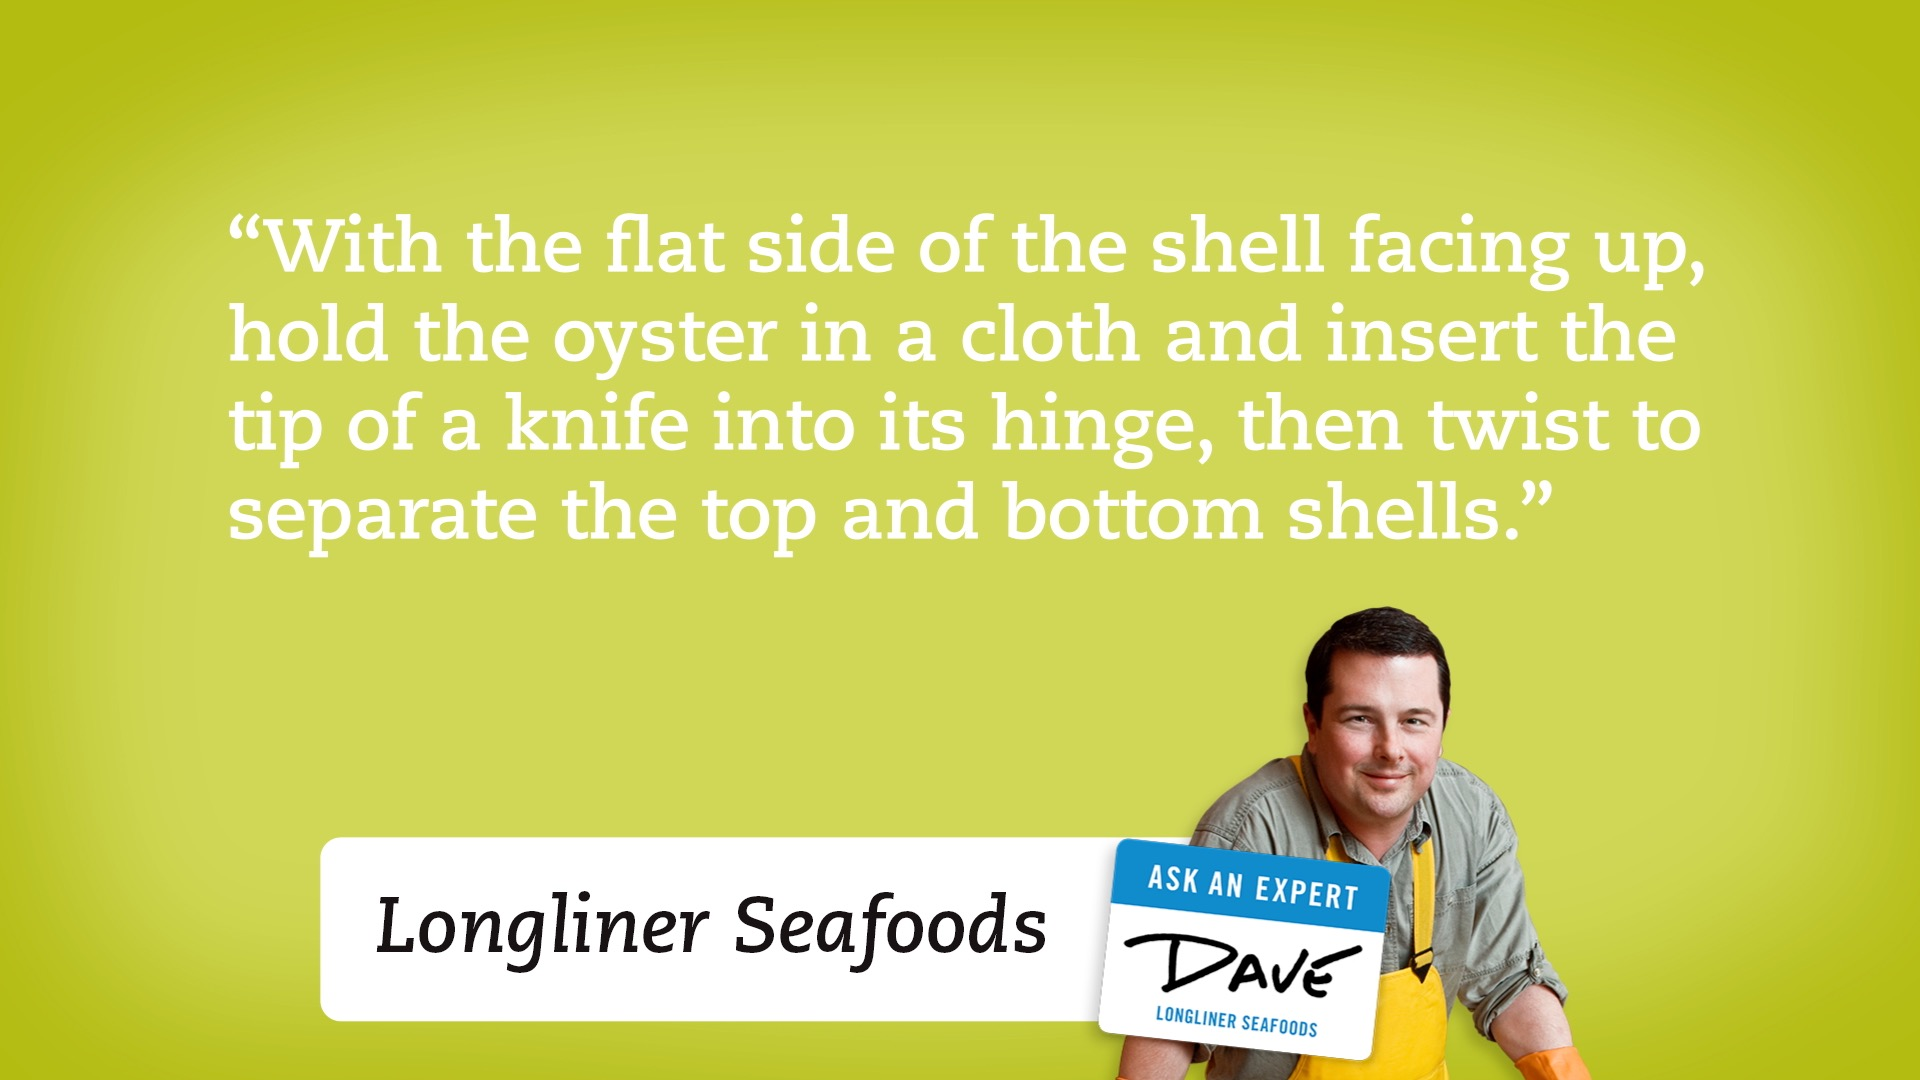 With the flat side of the shell facing up, hold the oyster in a cloth and insert the tip of a knife into its hinge, then twist to separate the top and bottom shells.